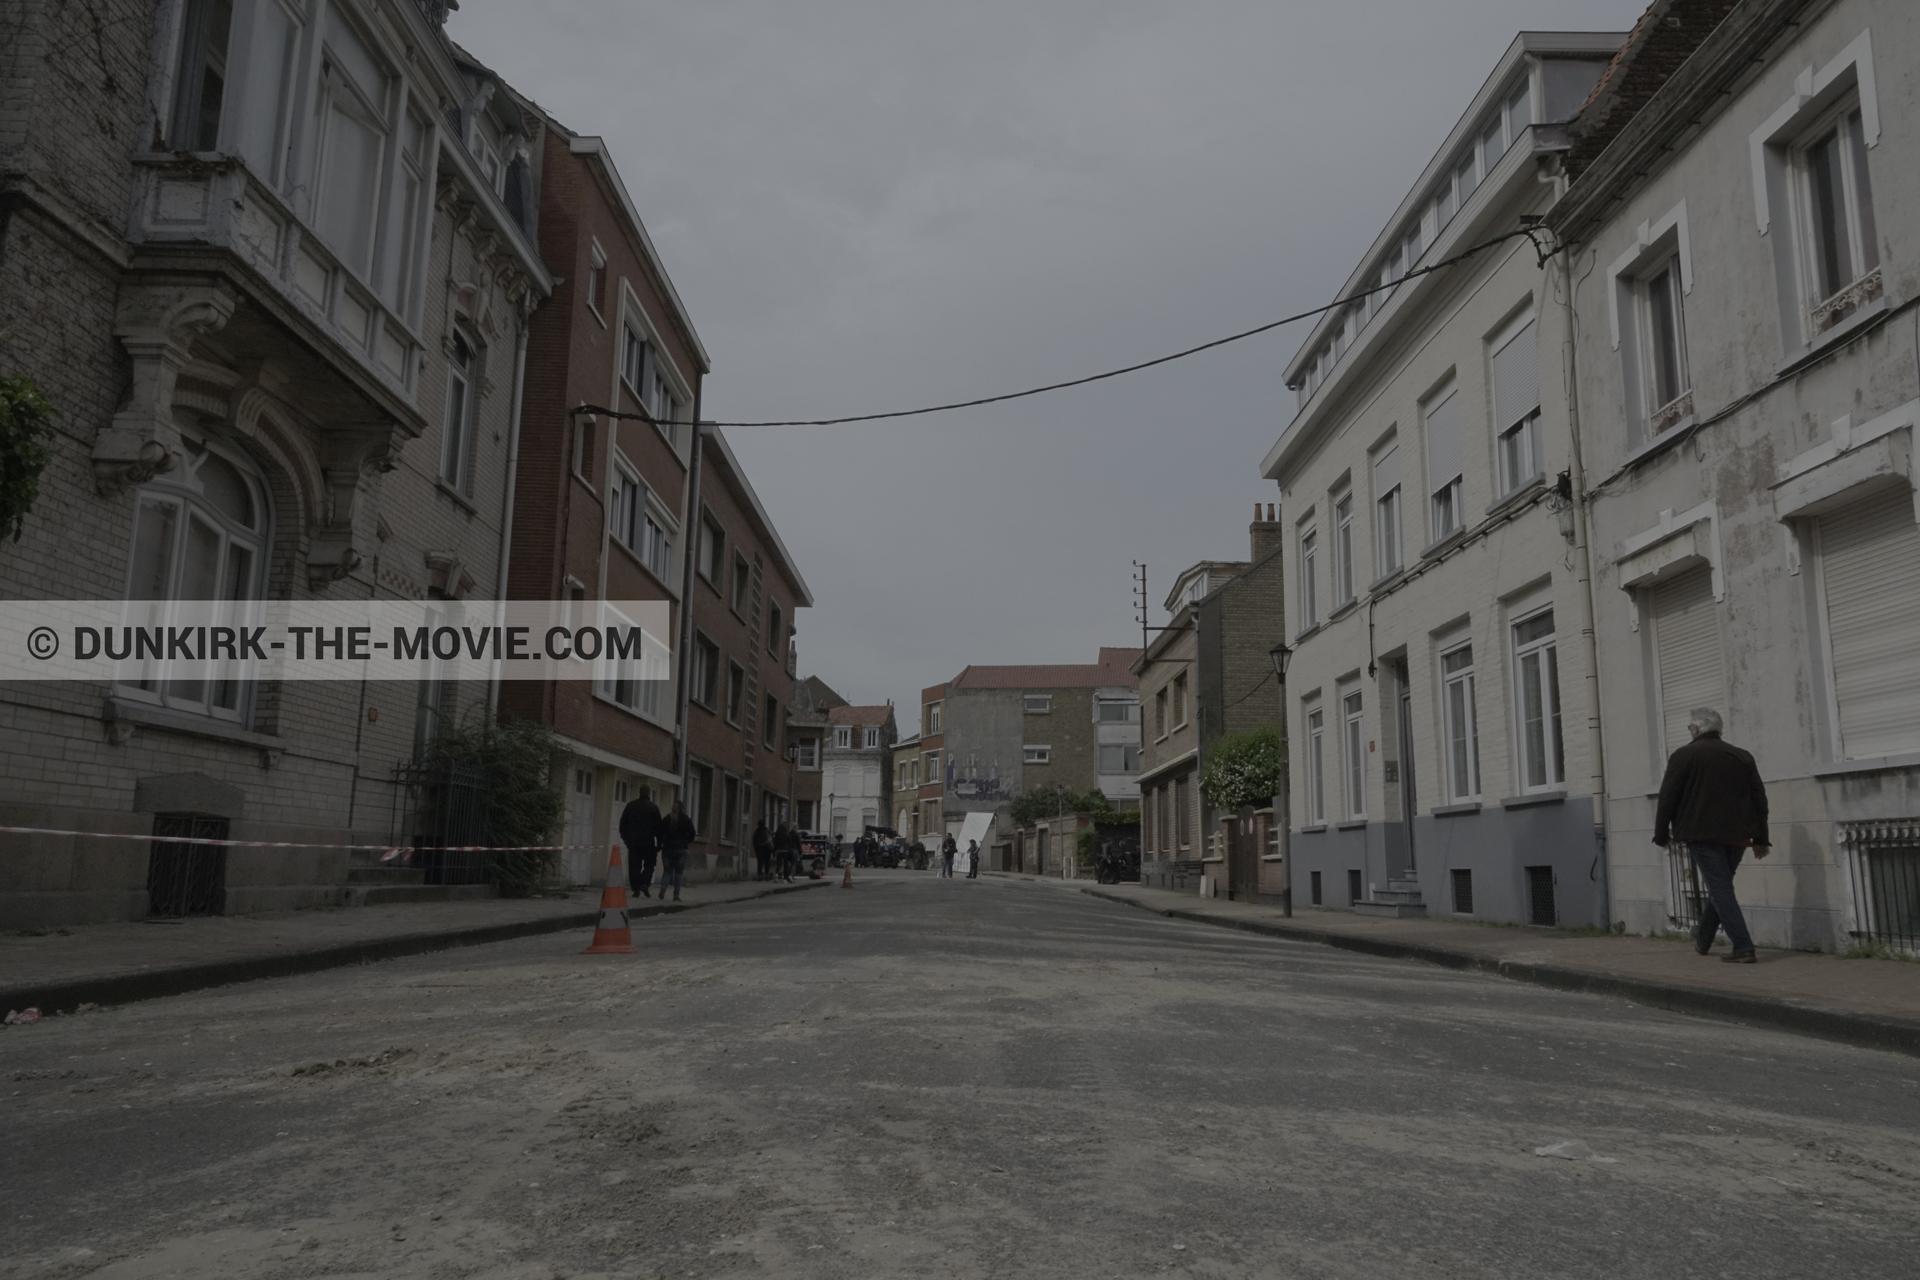 Picture with Belle Rade street,  from behind the scene of the Dunkirk movie by Nolan